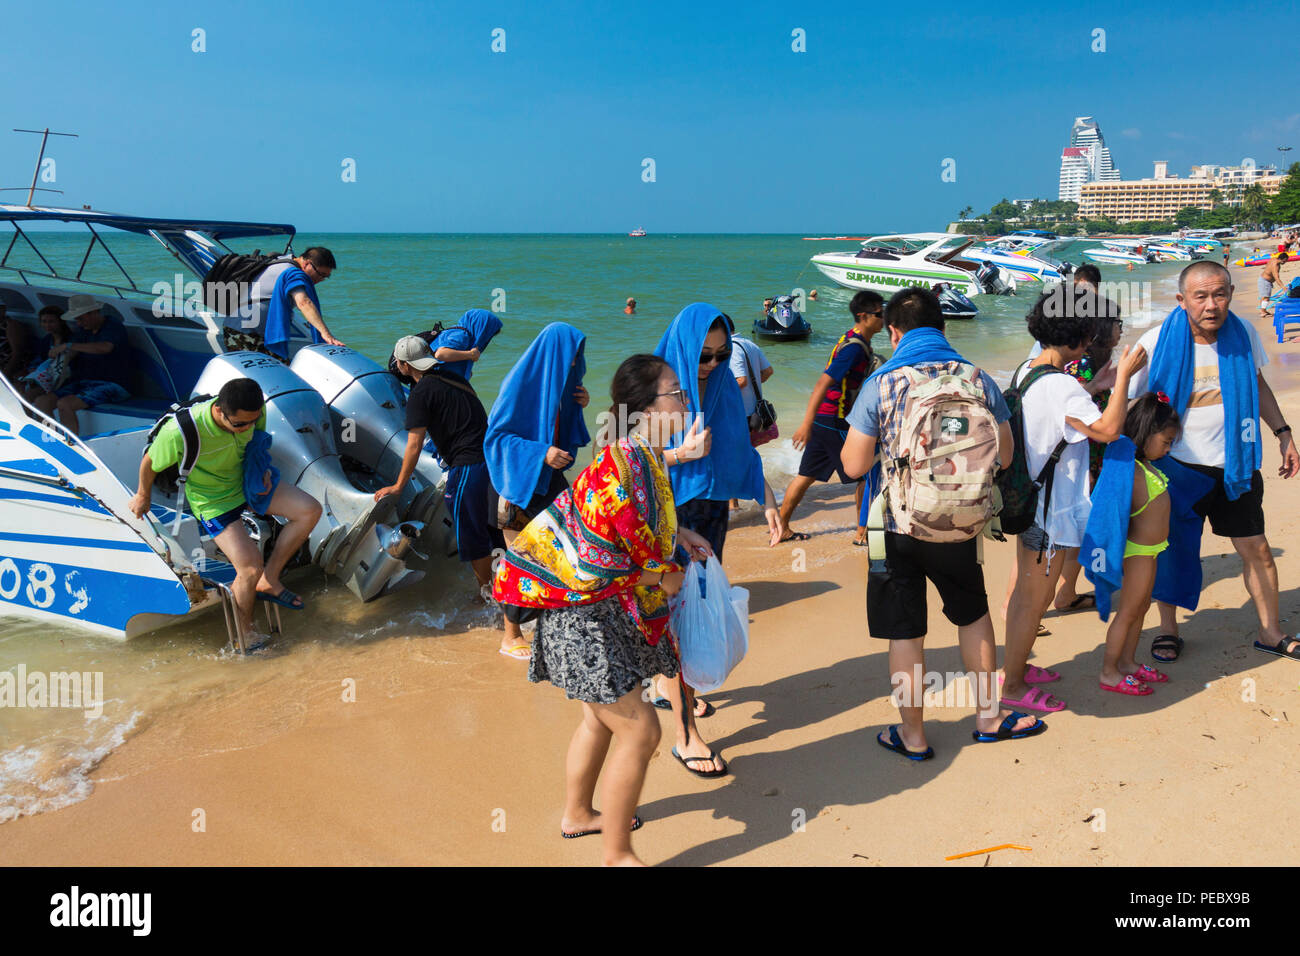 Chinese tourists returning from boat trip, Pattaya, Thailand - Stock Image